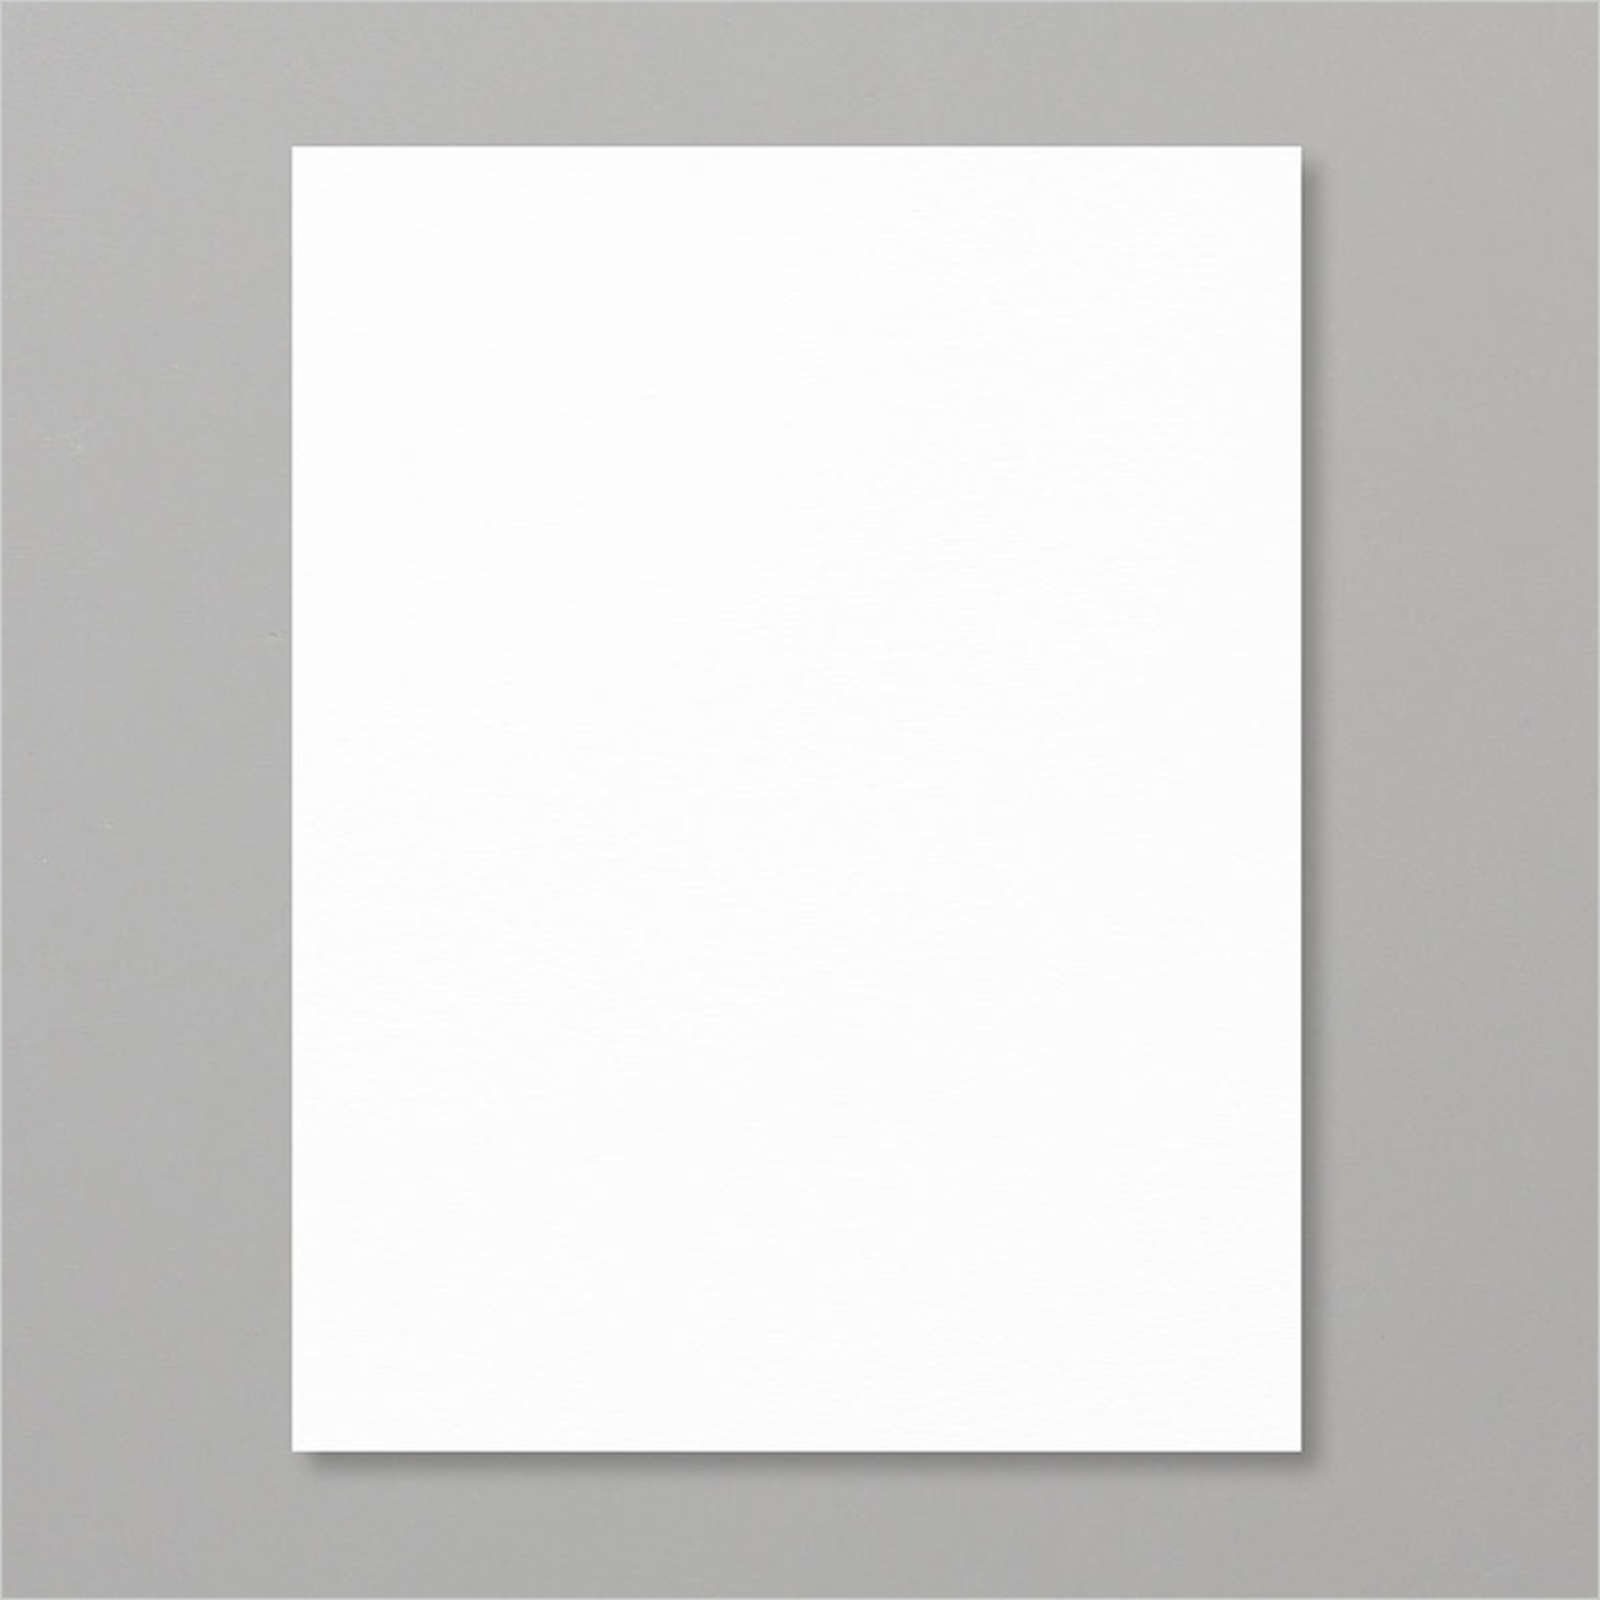 "WHISPER WHITE 8-1/2"" X 11"" CARDSTOCK"